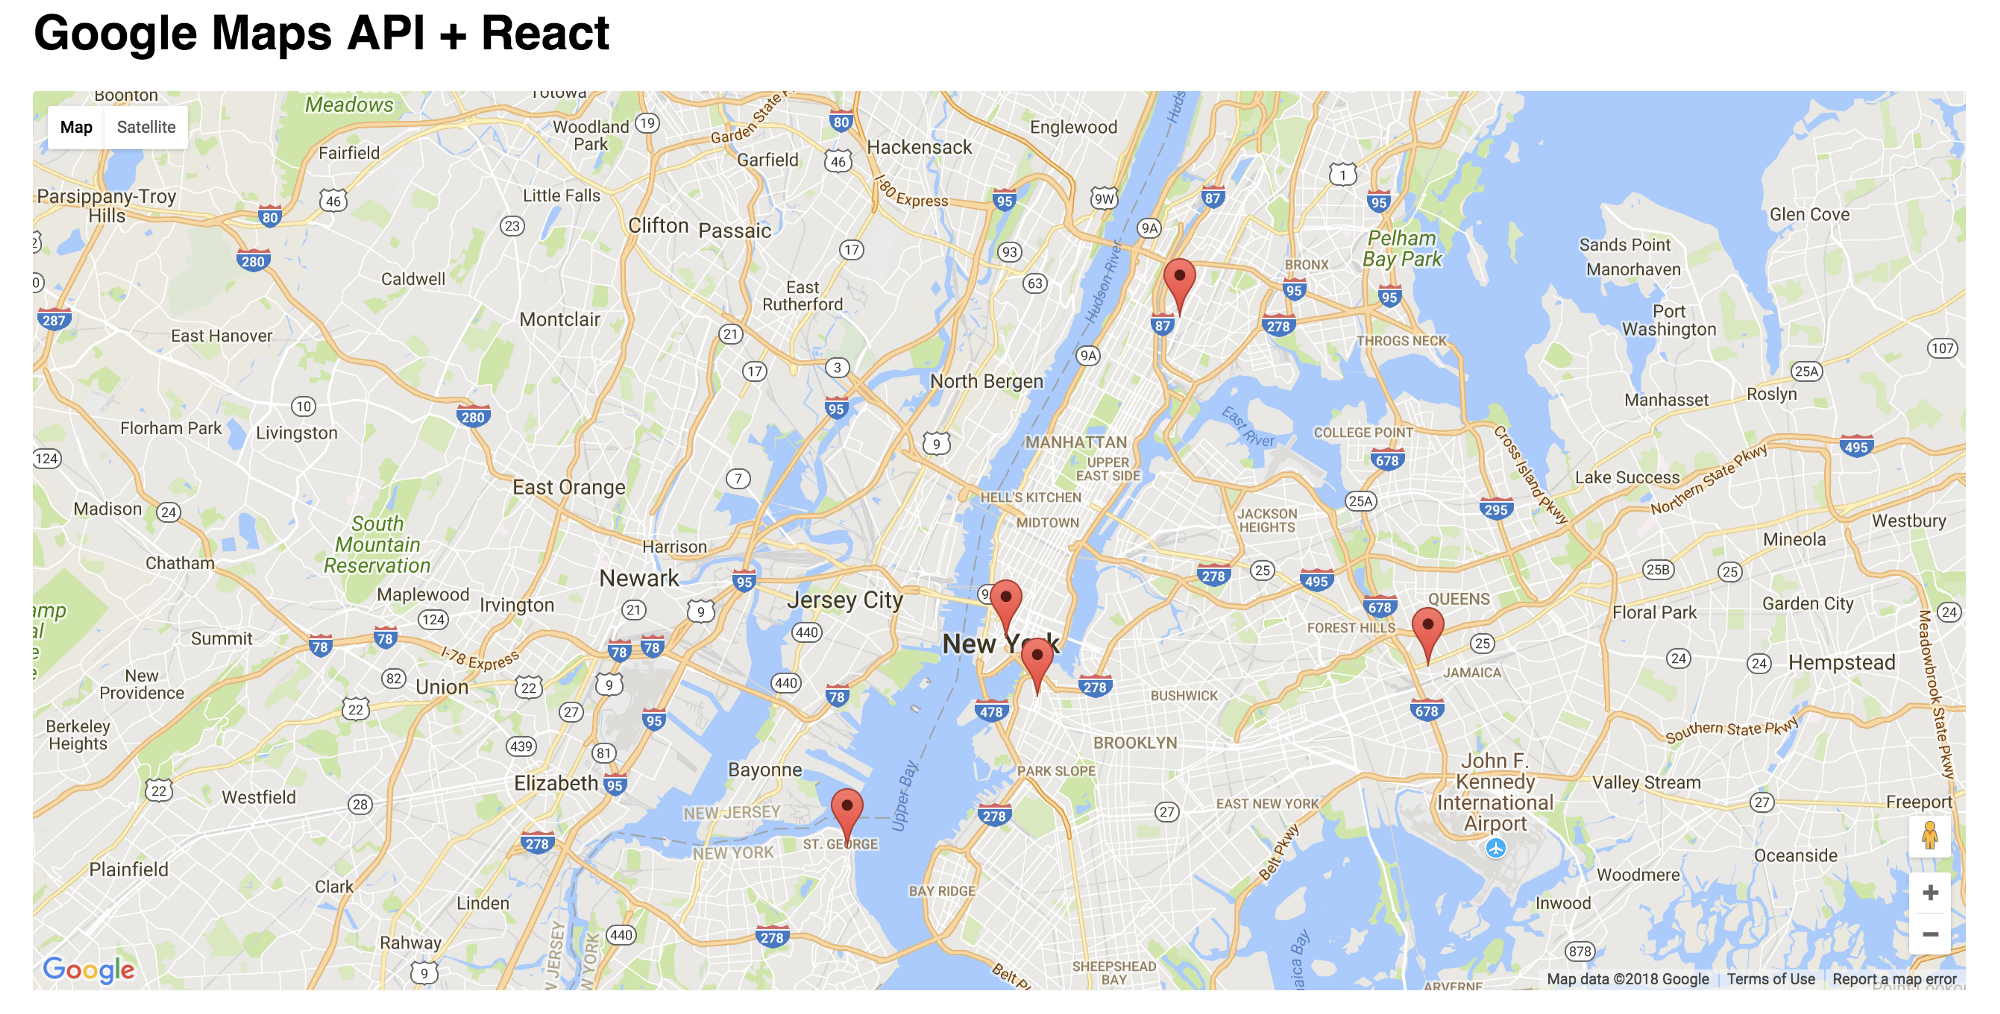 Simplified Google Maps JavaScript API in a React App